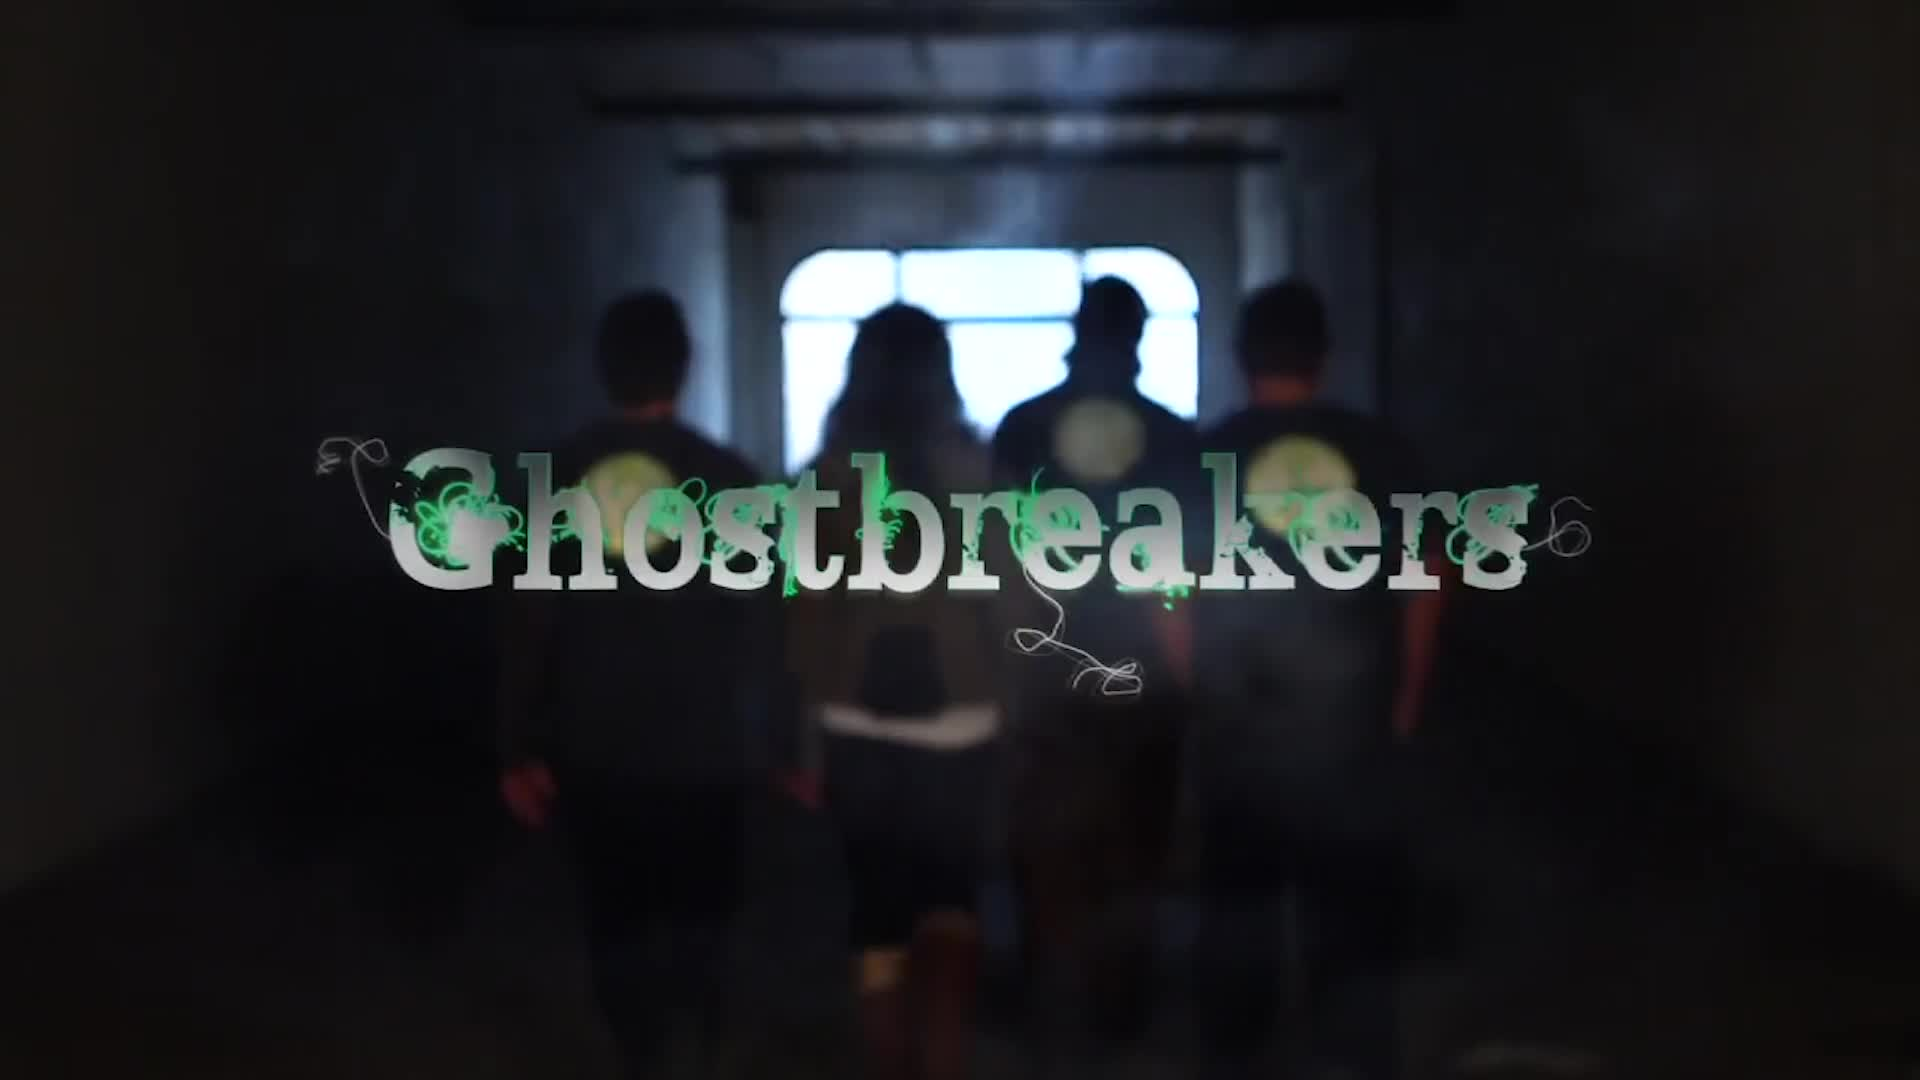 The Ghostbreakers